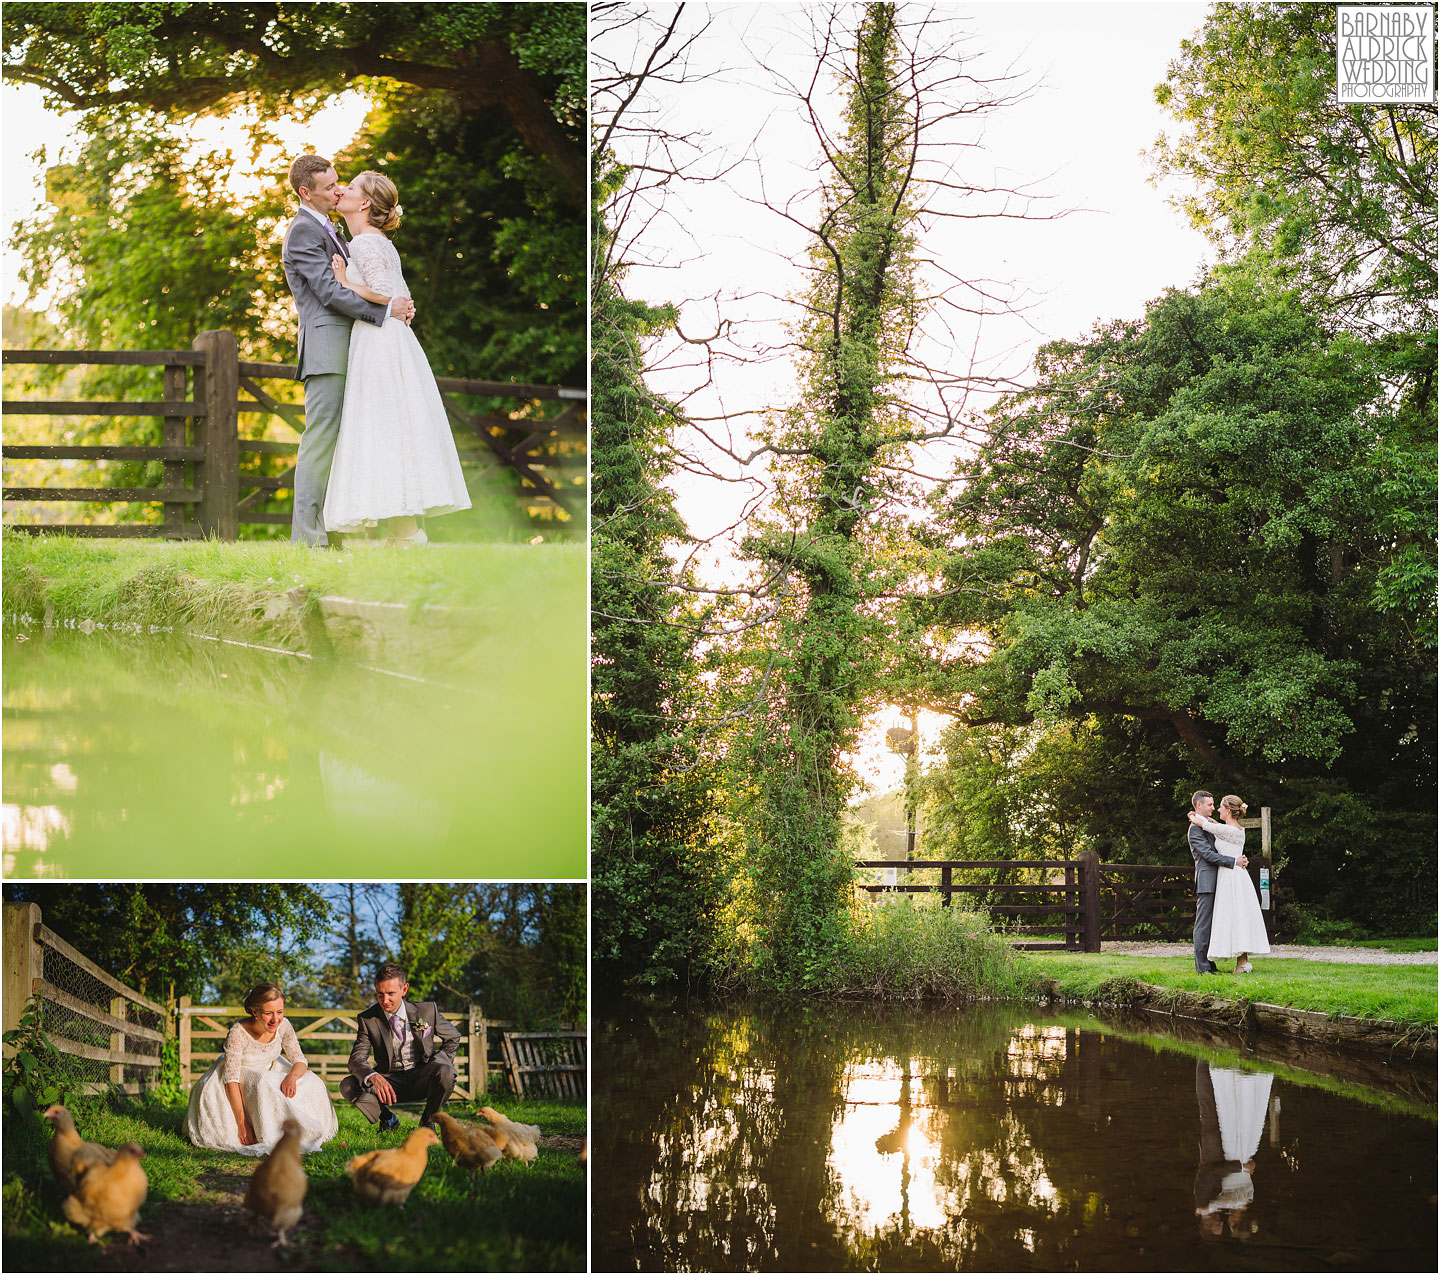 Golden hour evening portraits at The Pheasant Hotel Harome, The Pheasant Hotel Wedding Helmsley, Wedding Photography at The Pheasant Hotel North Yorkshire, North Yorkshire Wedding Photographer